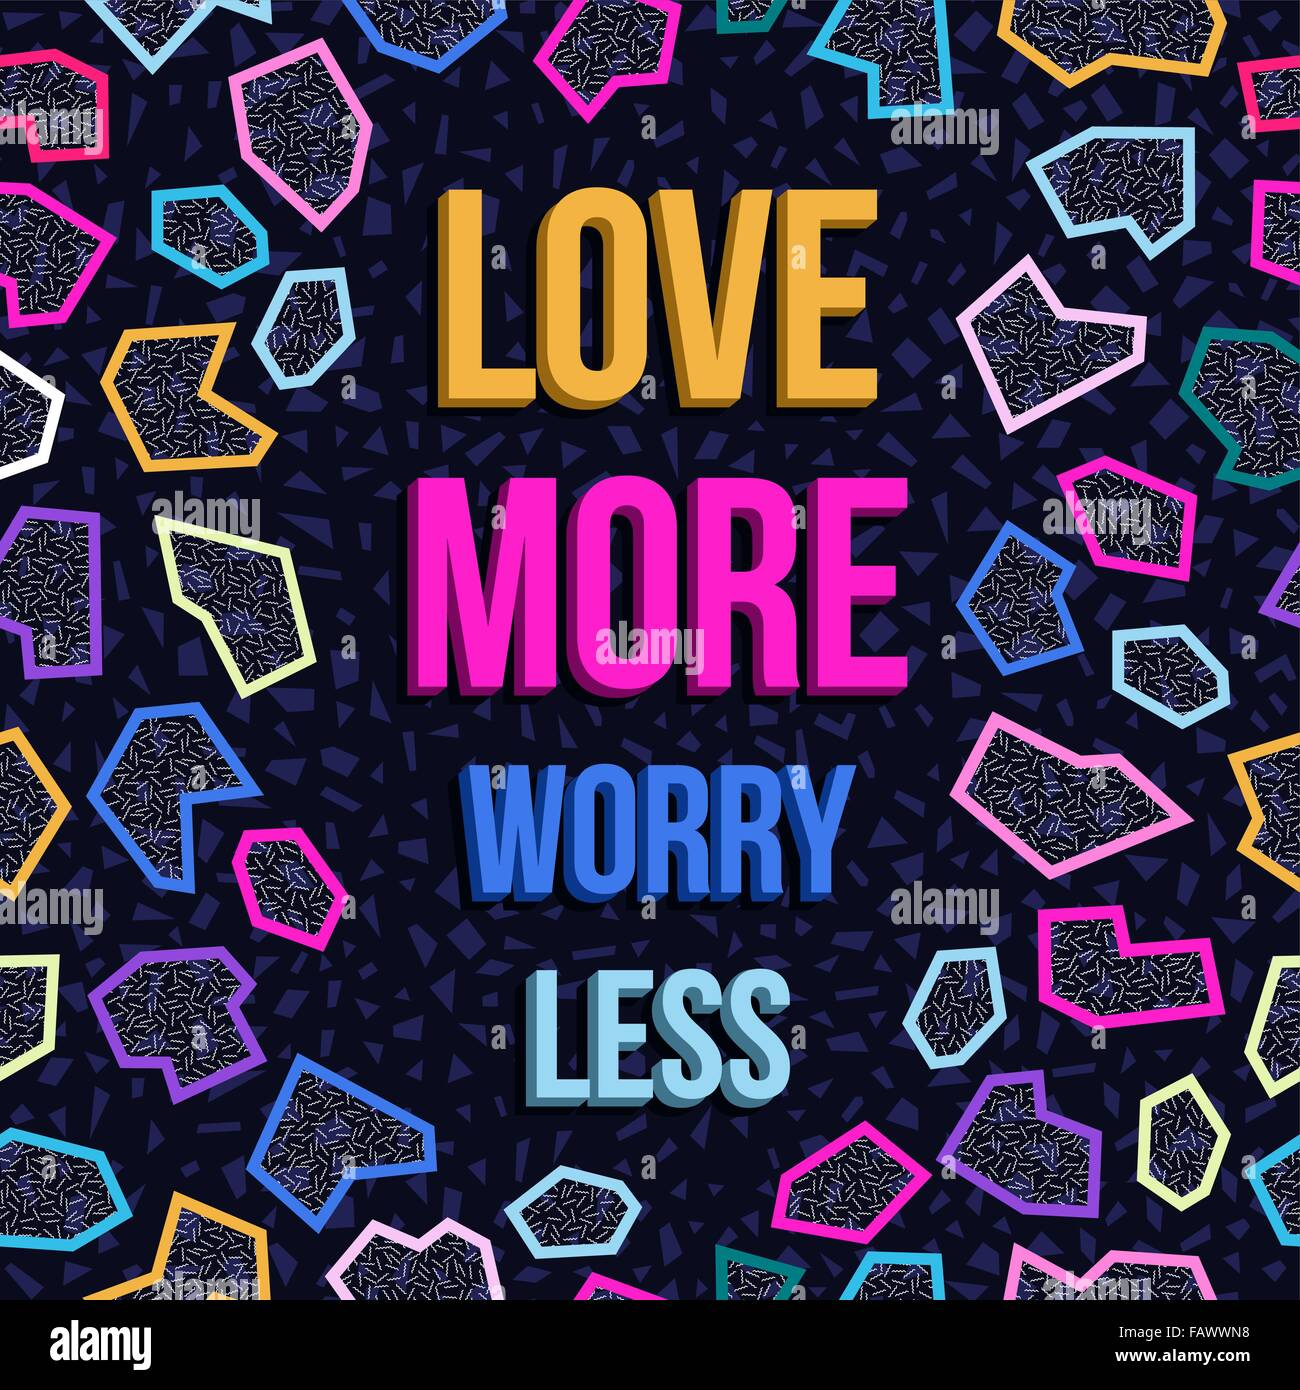 Inspiration poster design, love more worry less quote motivation text with retro 80s memphis style geometry background. - Stock Vector